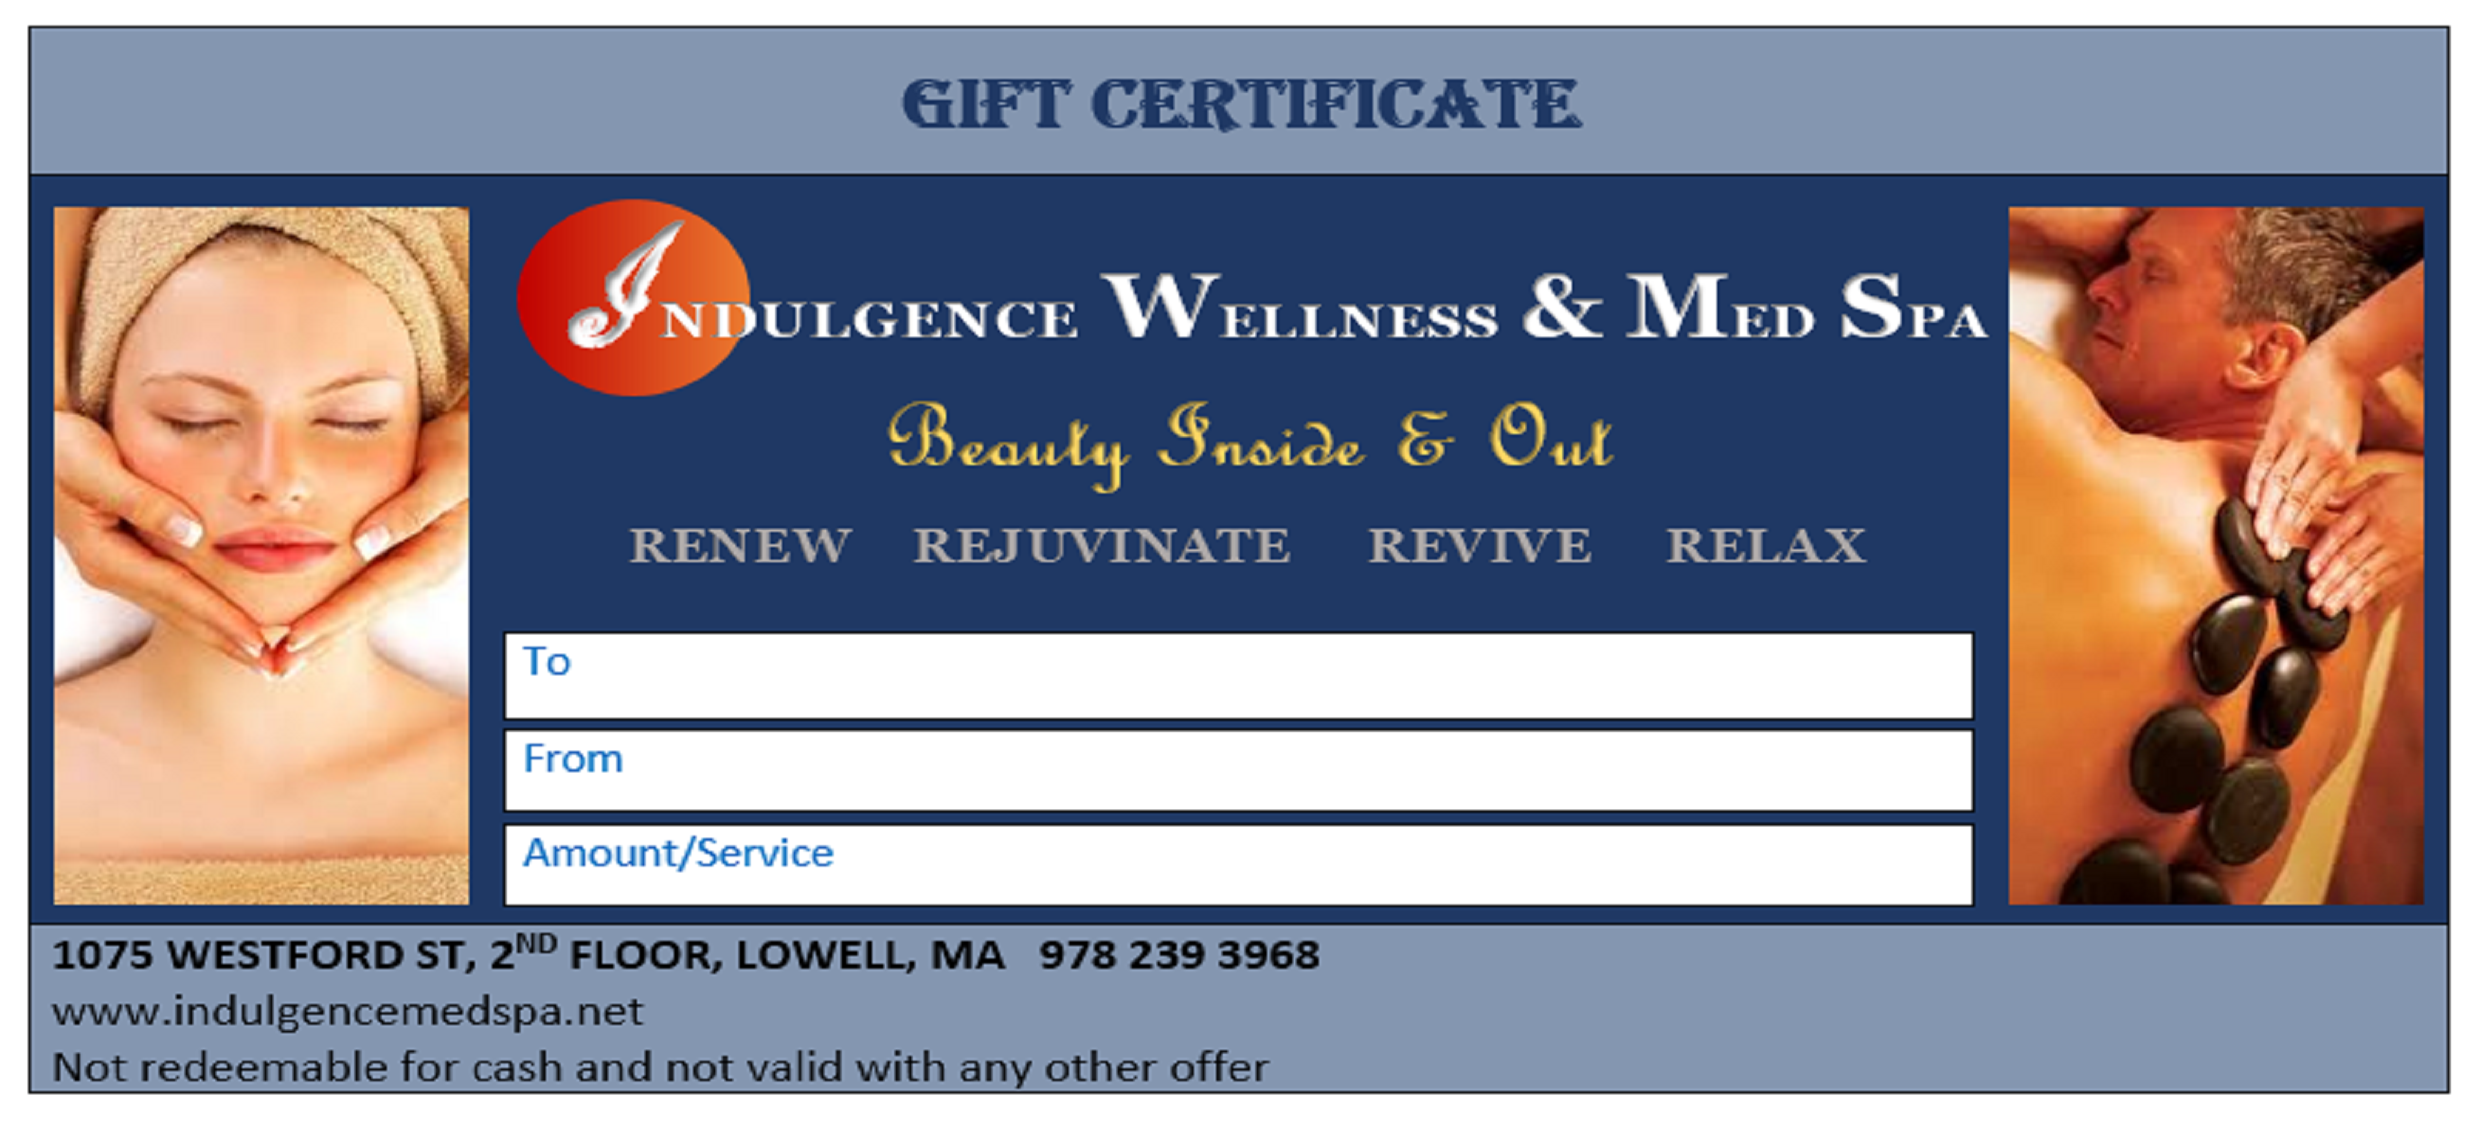 Image of gift certificate template